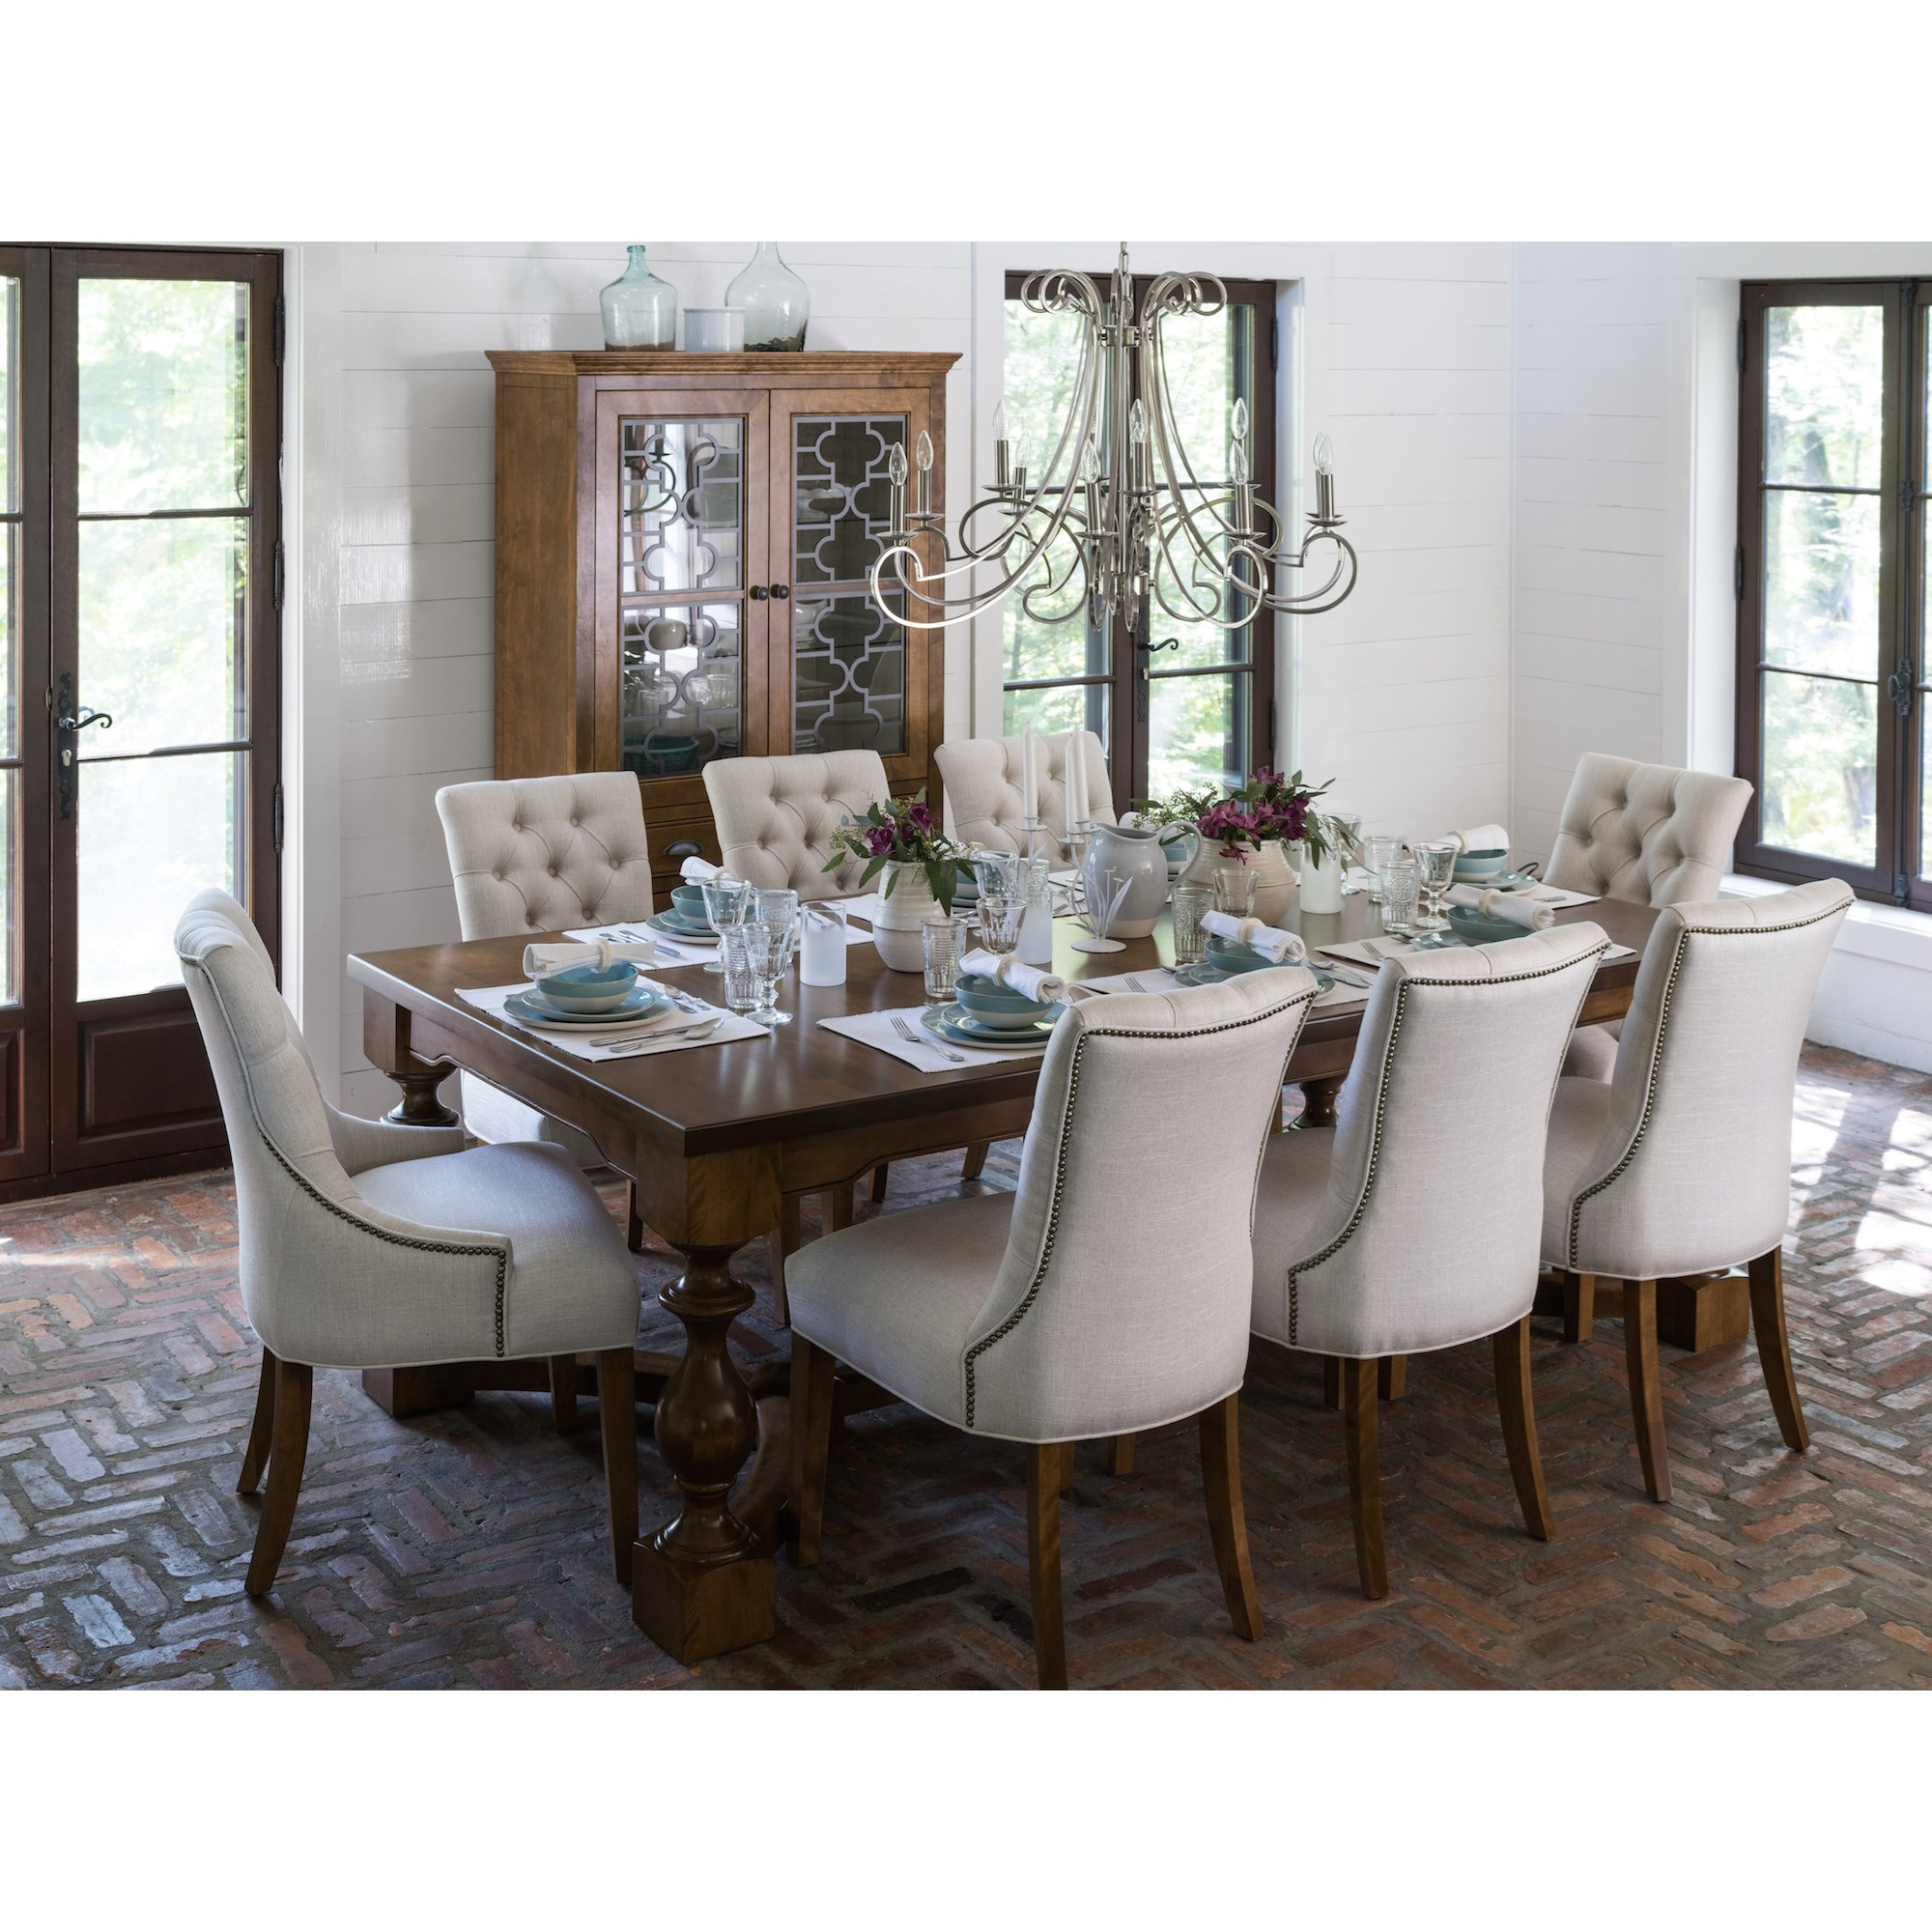 Farmhouse Dining Room Group by Canadel at Jordan's Home Furnishings